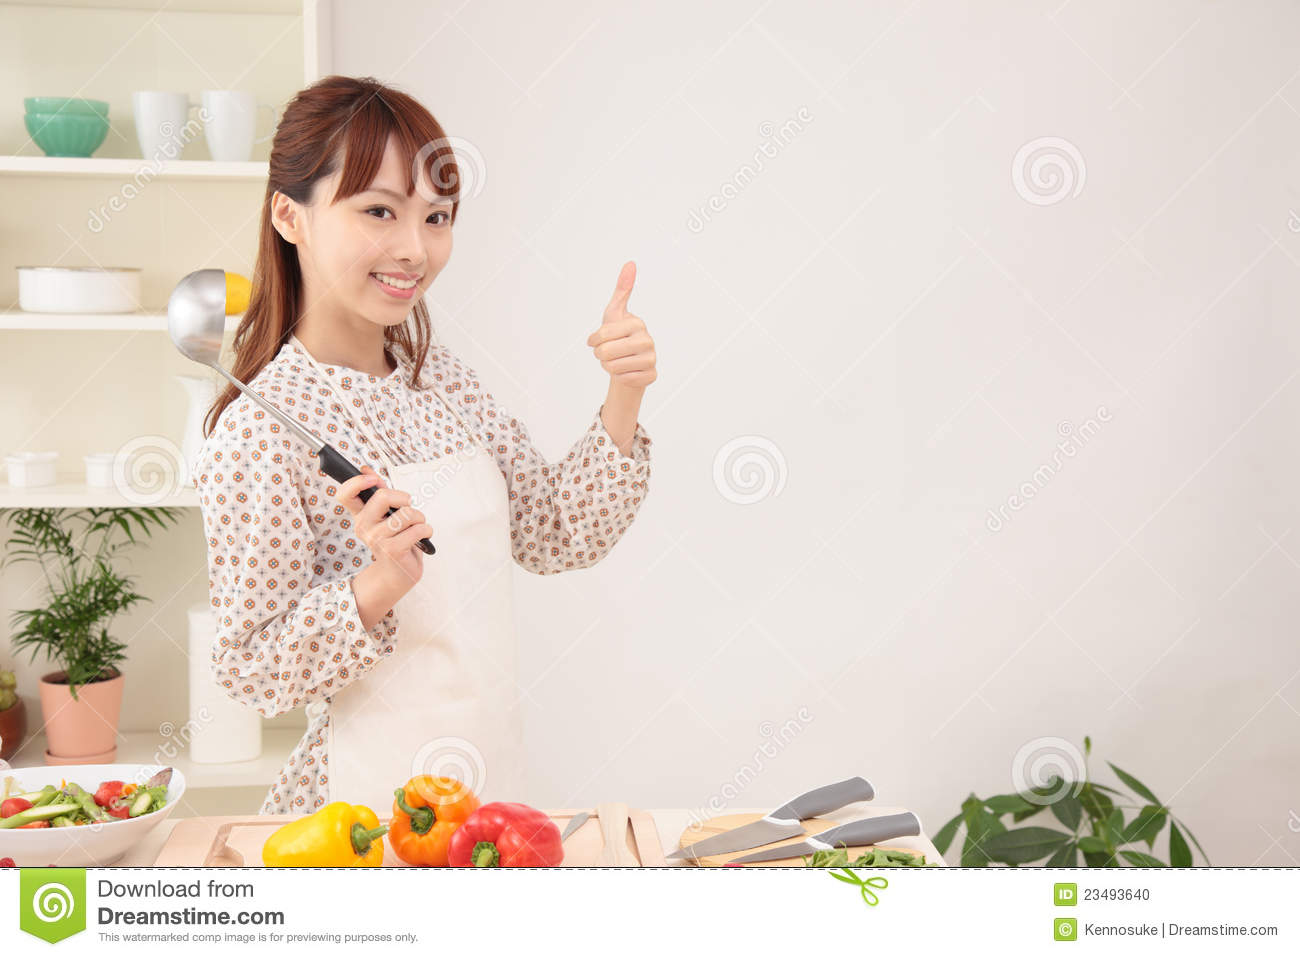 Woman cooking in kitchen with space for copy